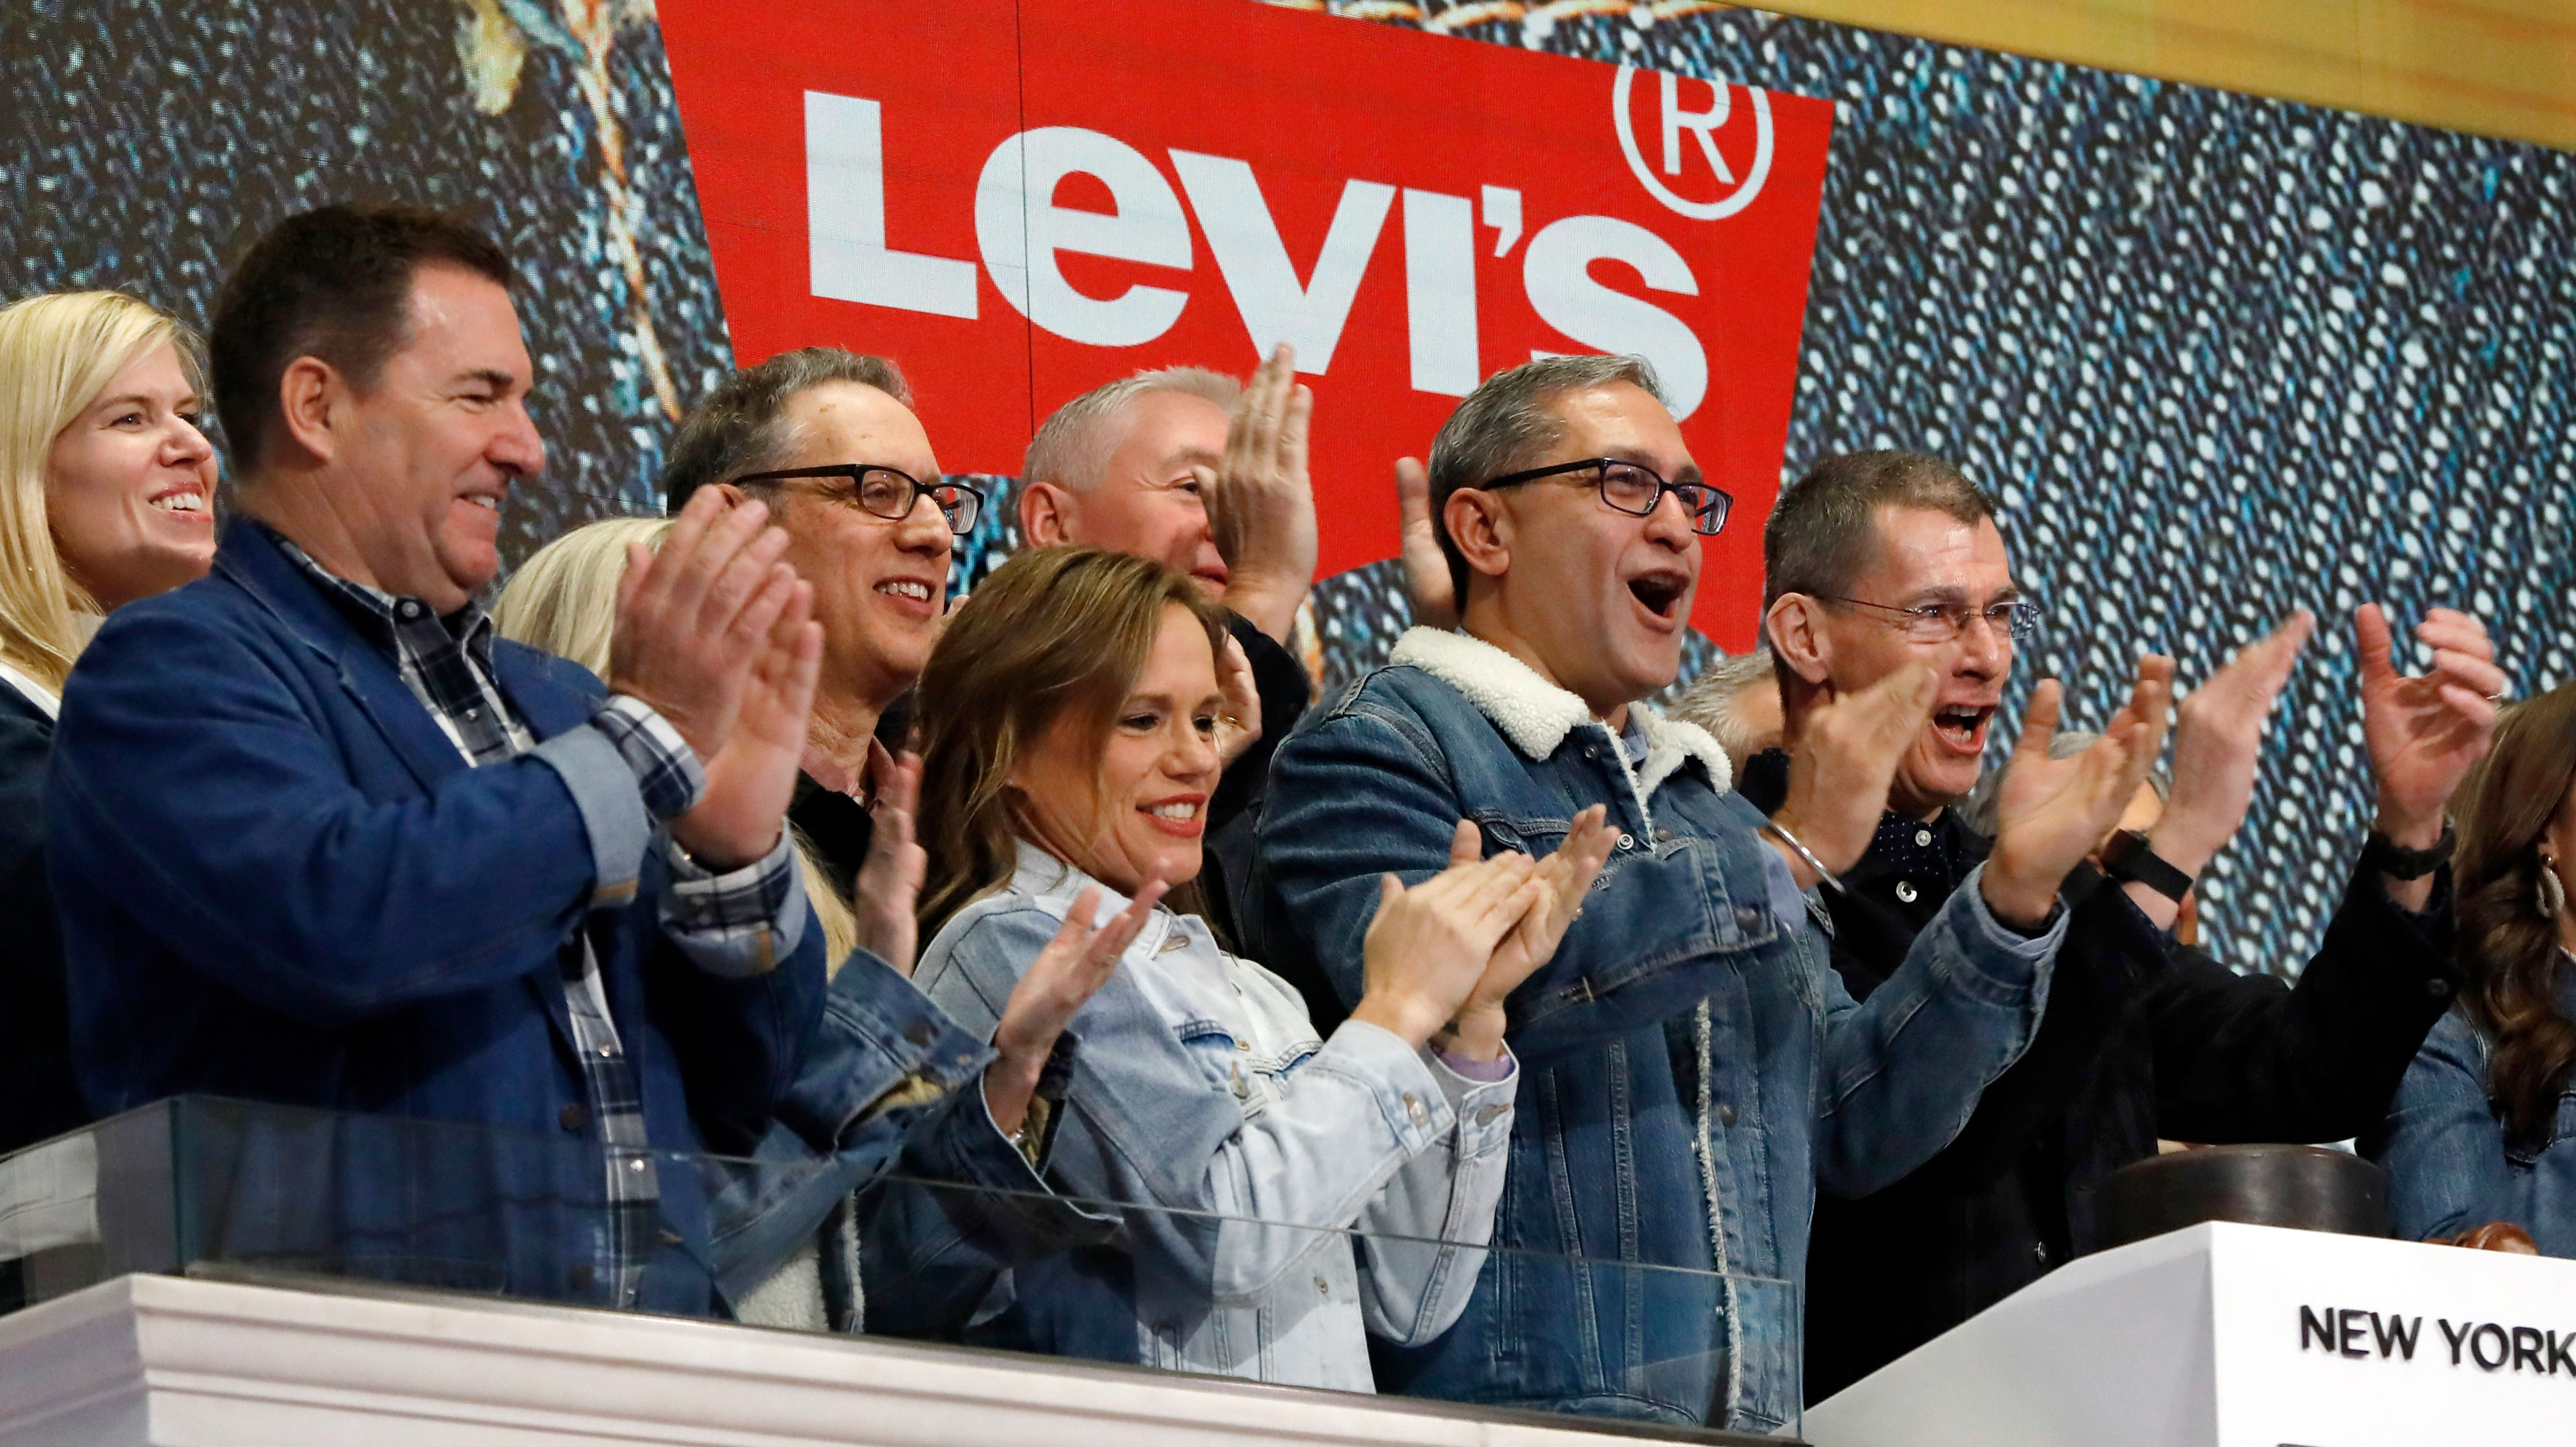 When will the levi ipo occur